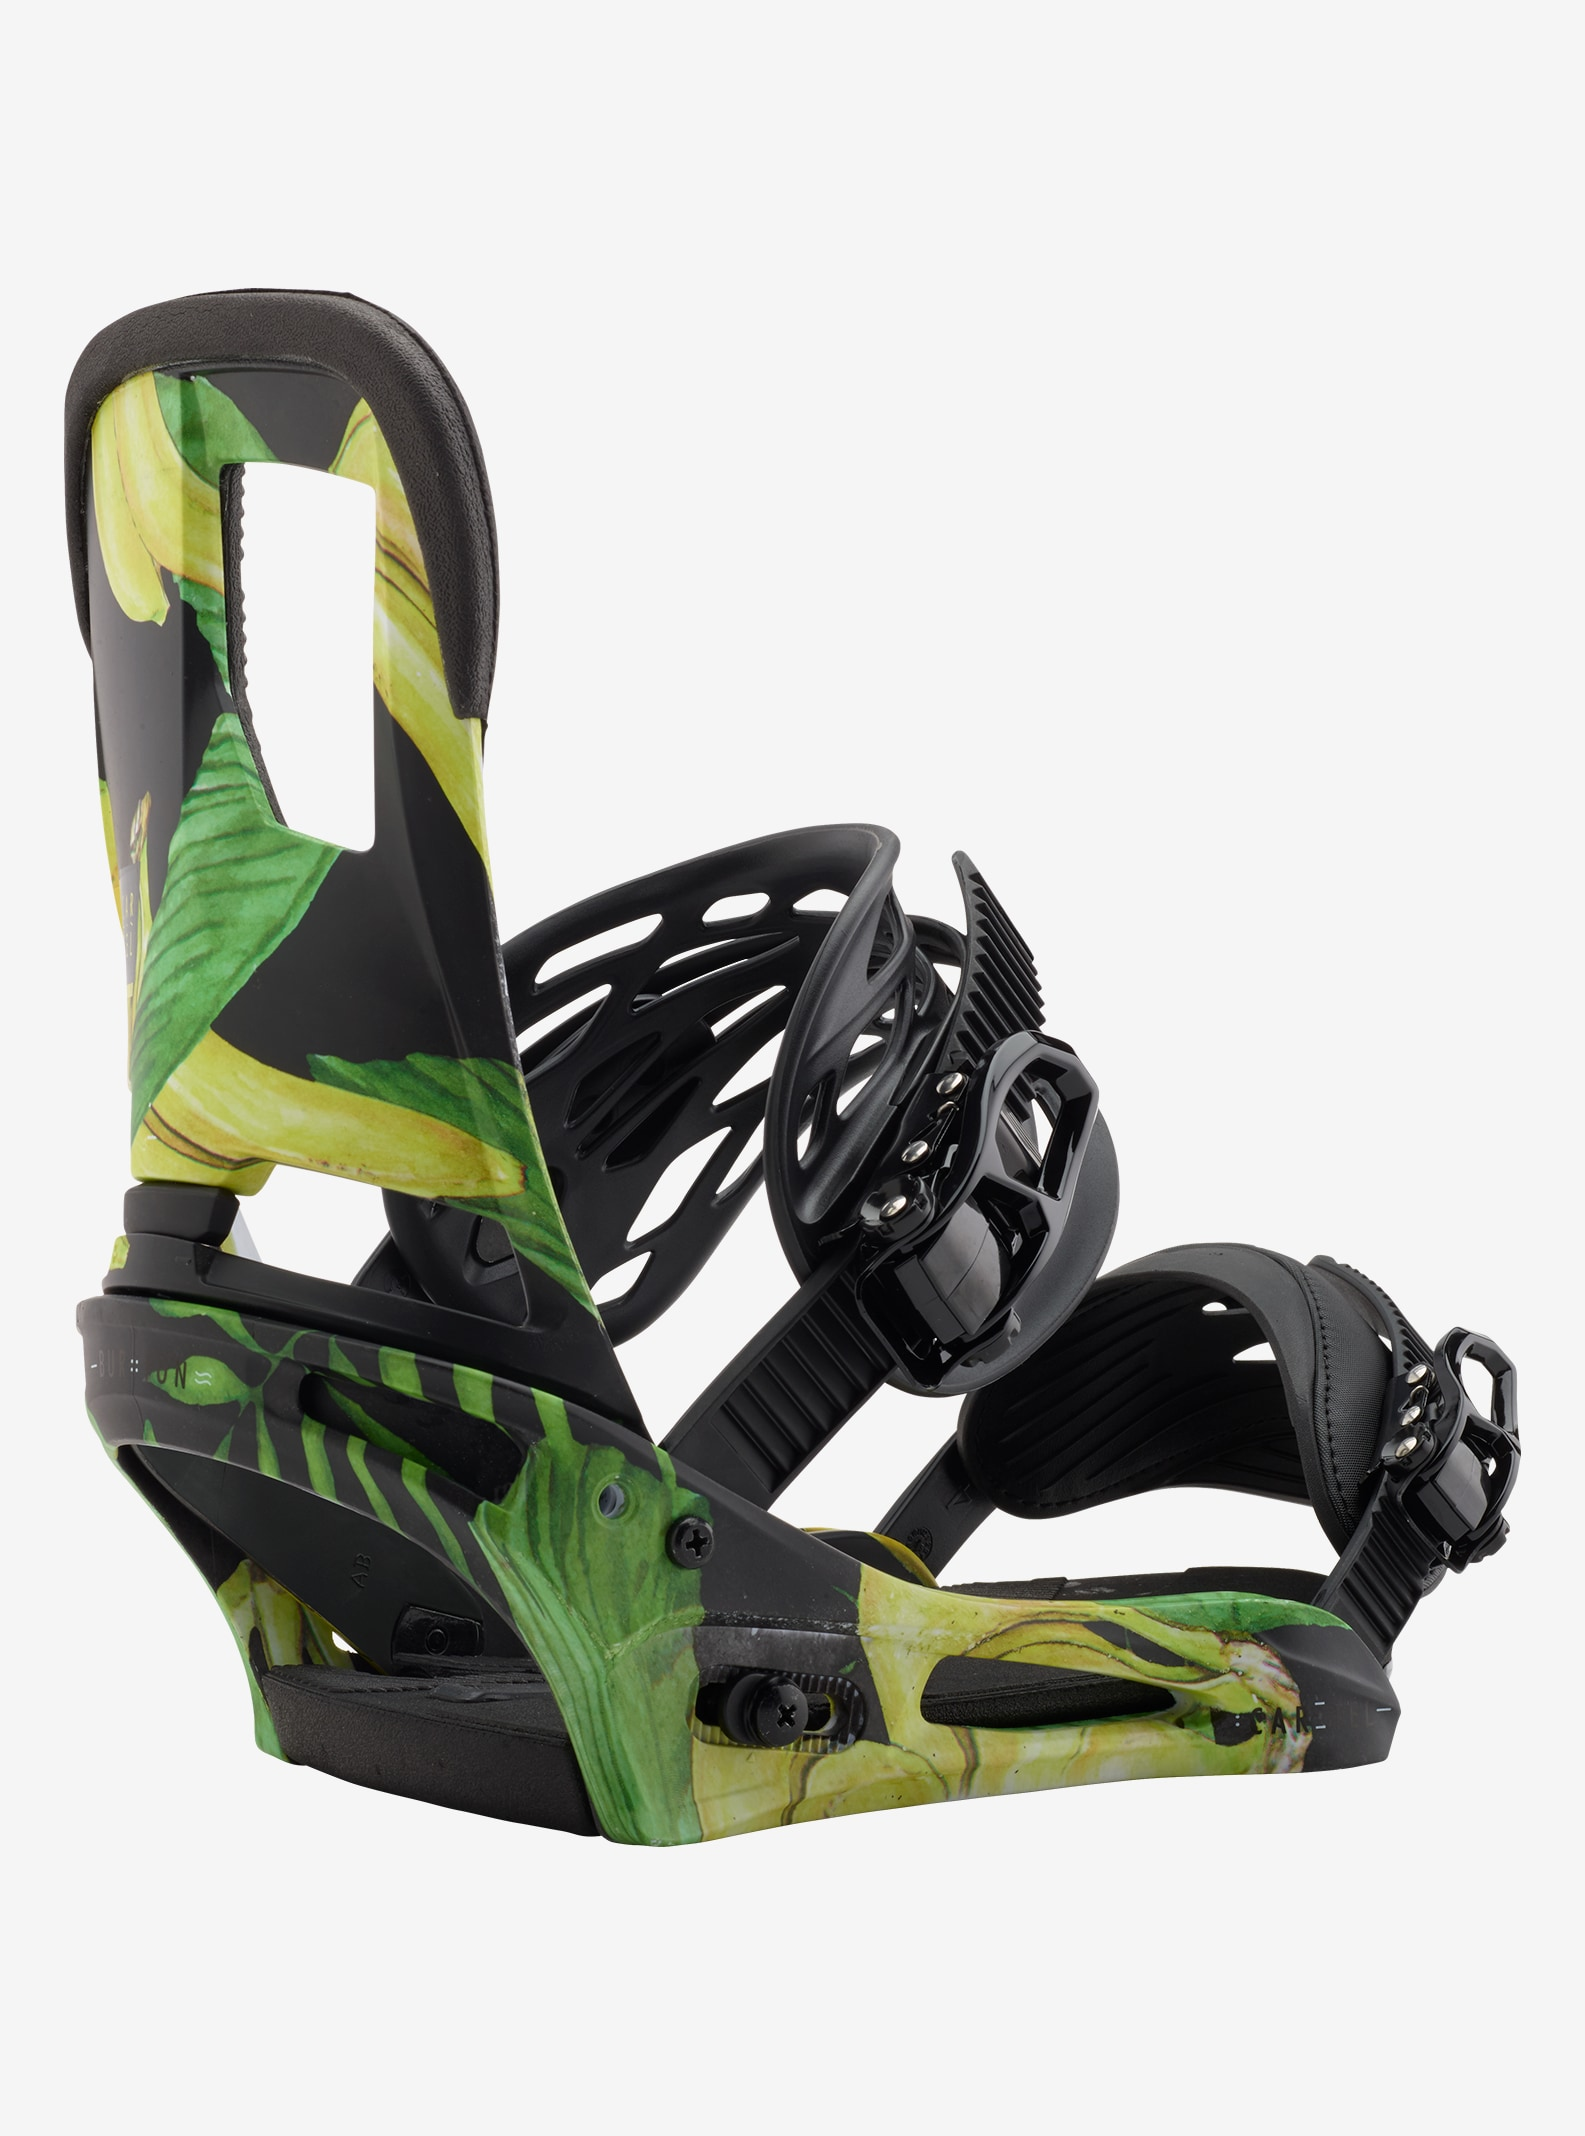 Men's Burton Cartel Snowboard Binding shown in Tommy Bananas